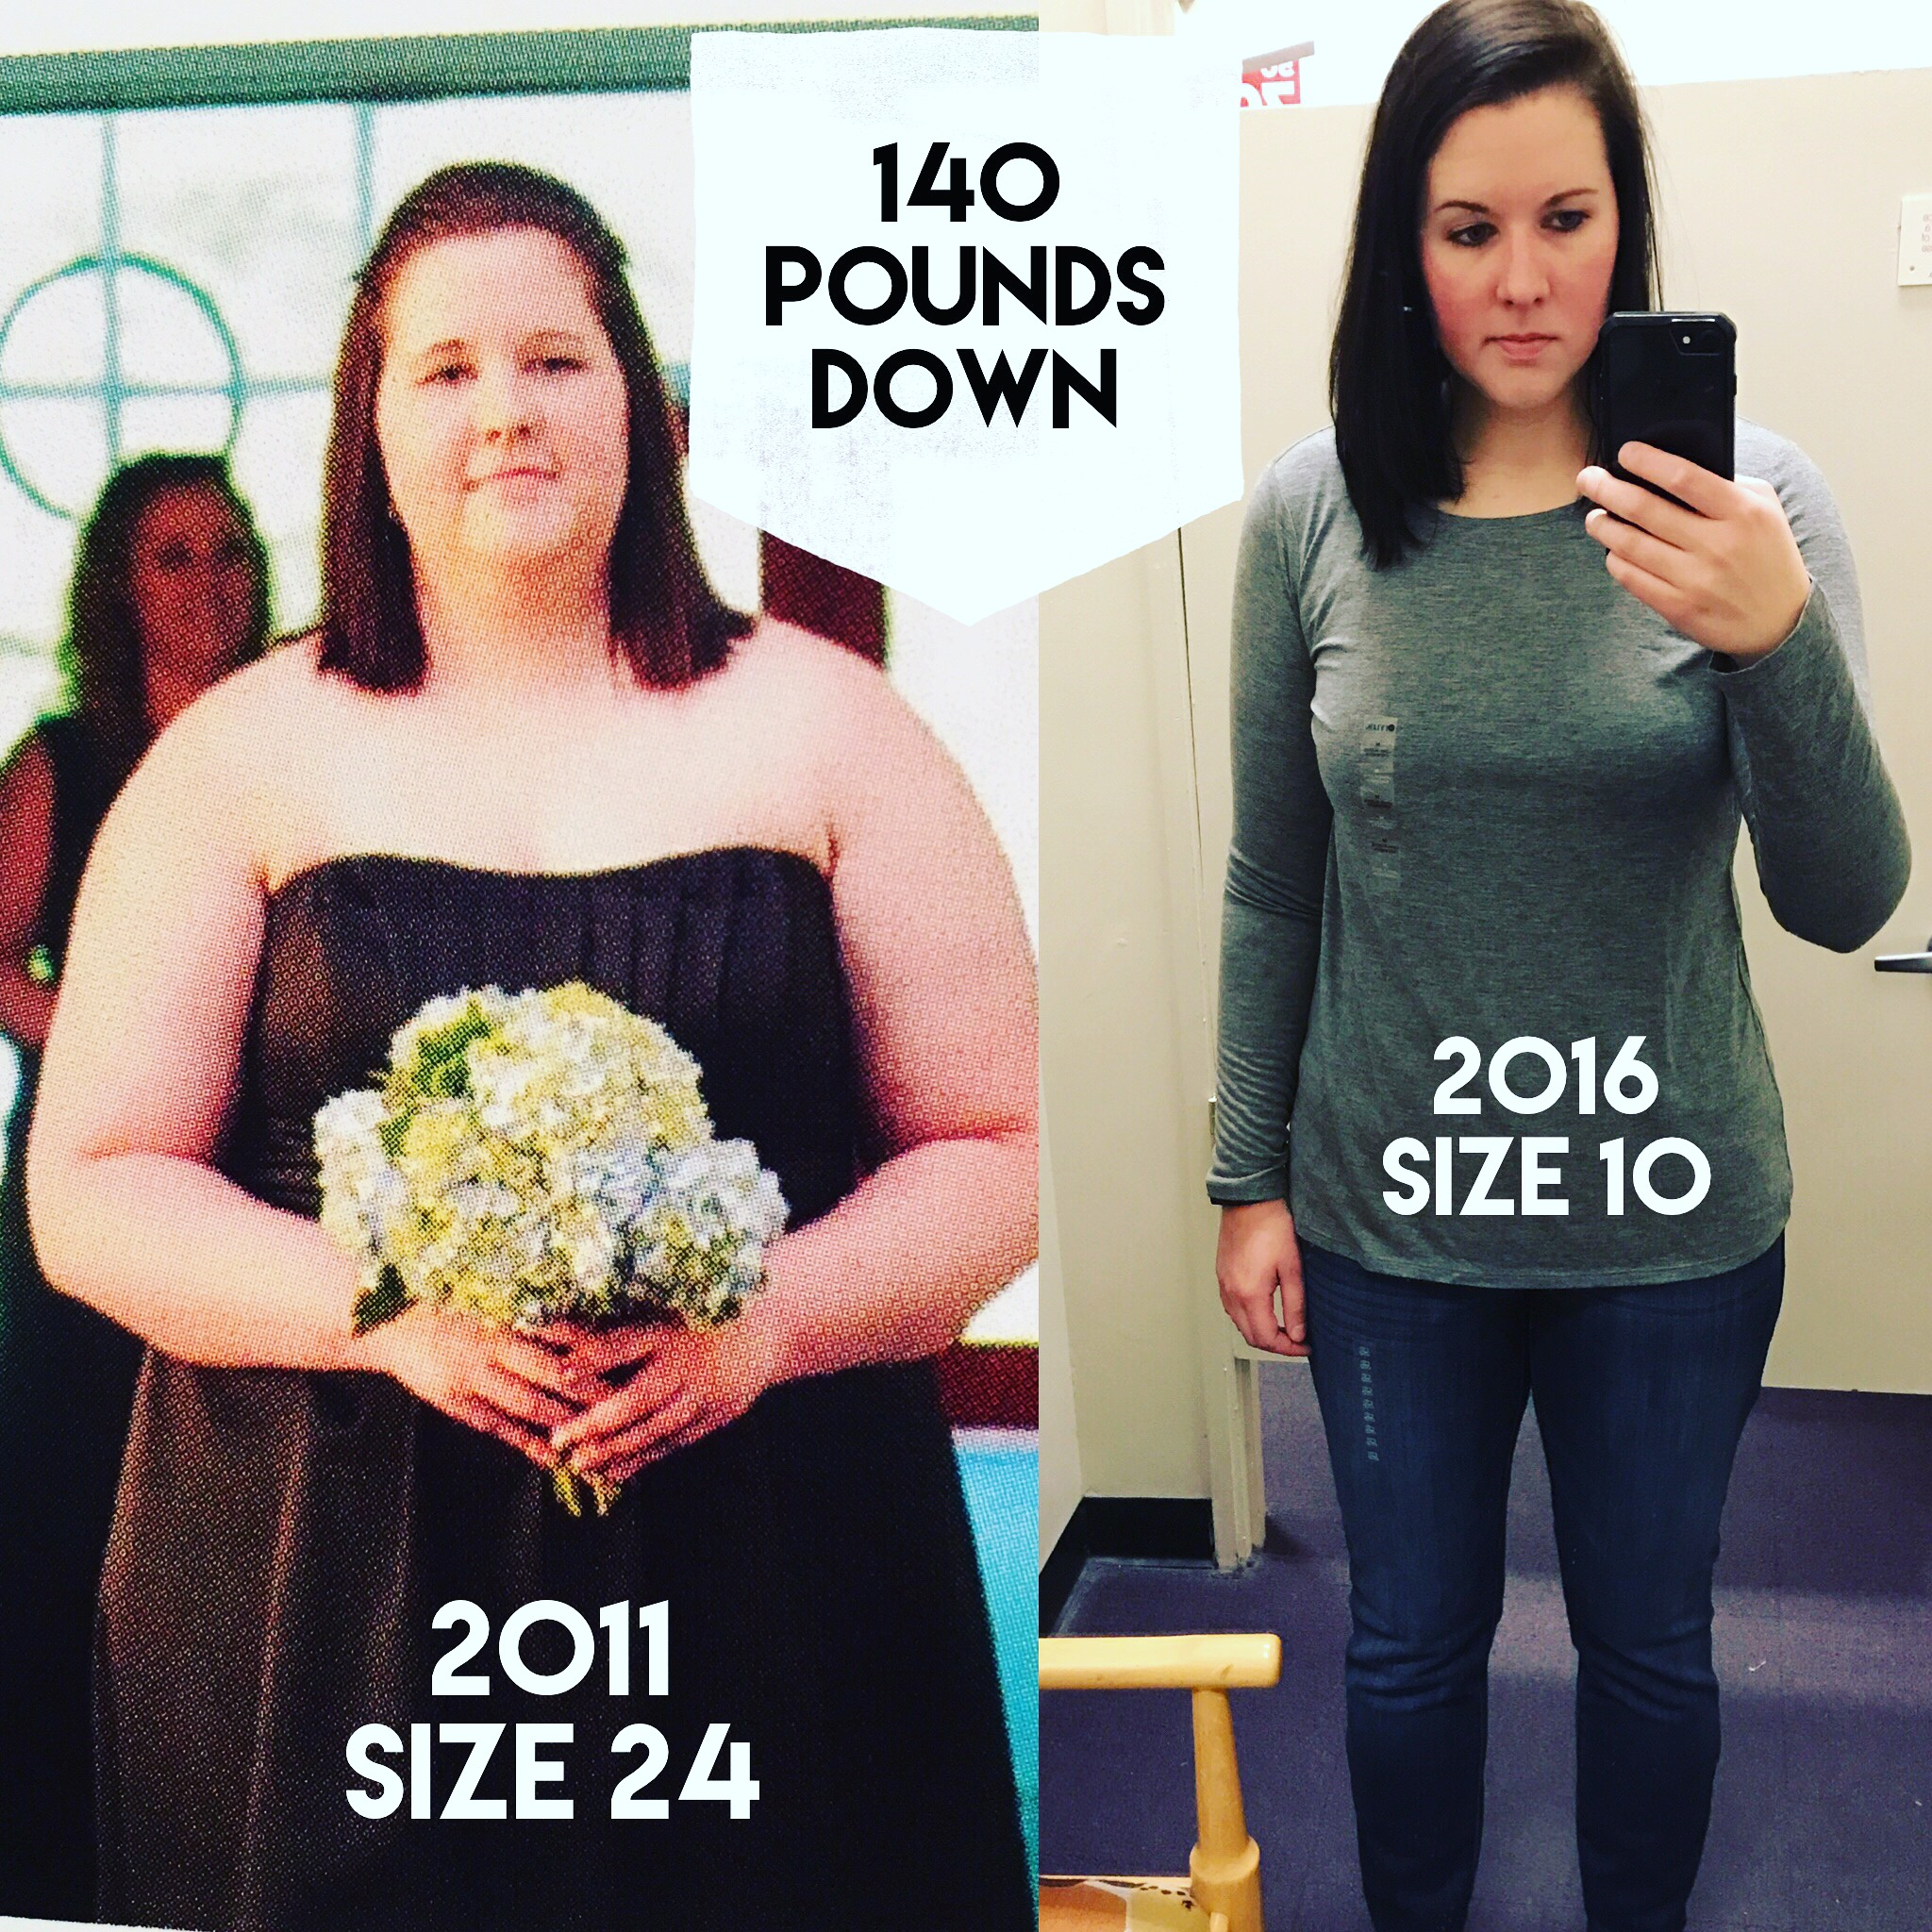 Is 140 pounds fat